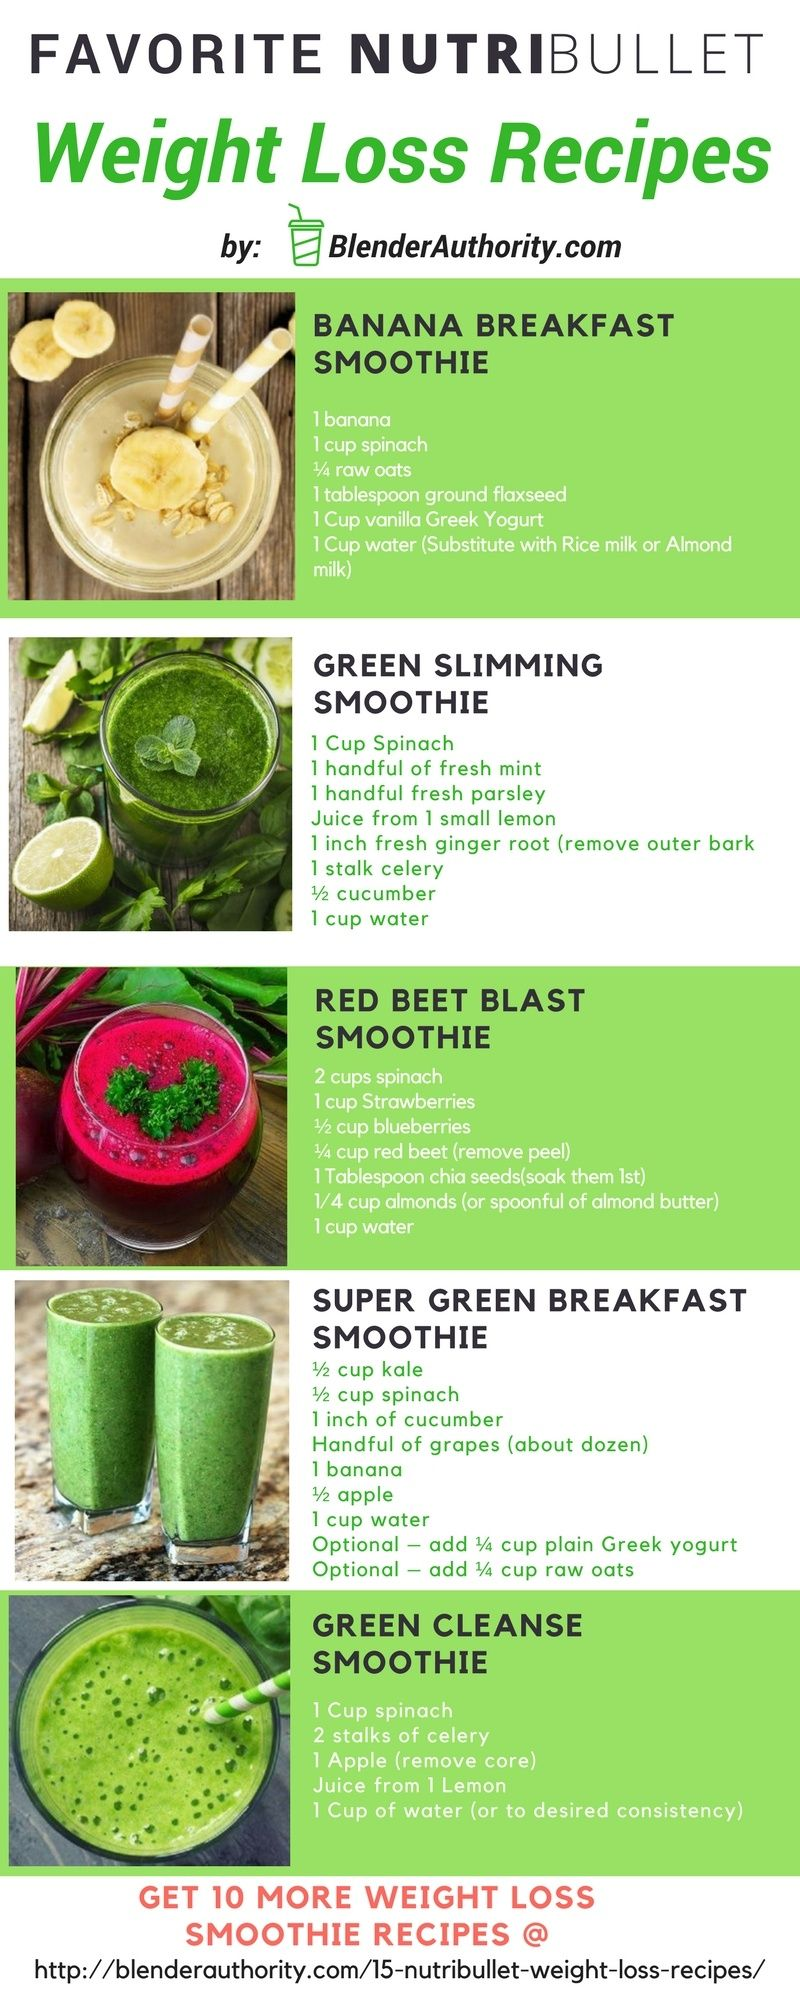 15 Nutribullet Weight Loss Recipes | Nutribullet recipes ...